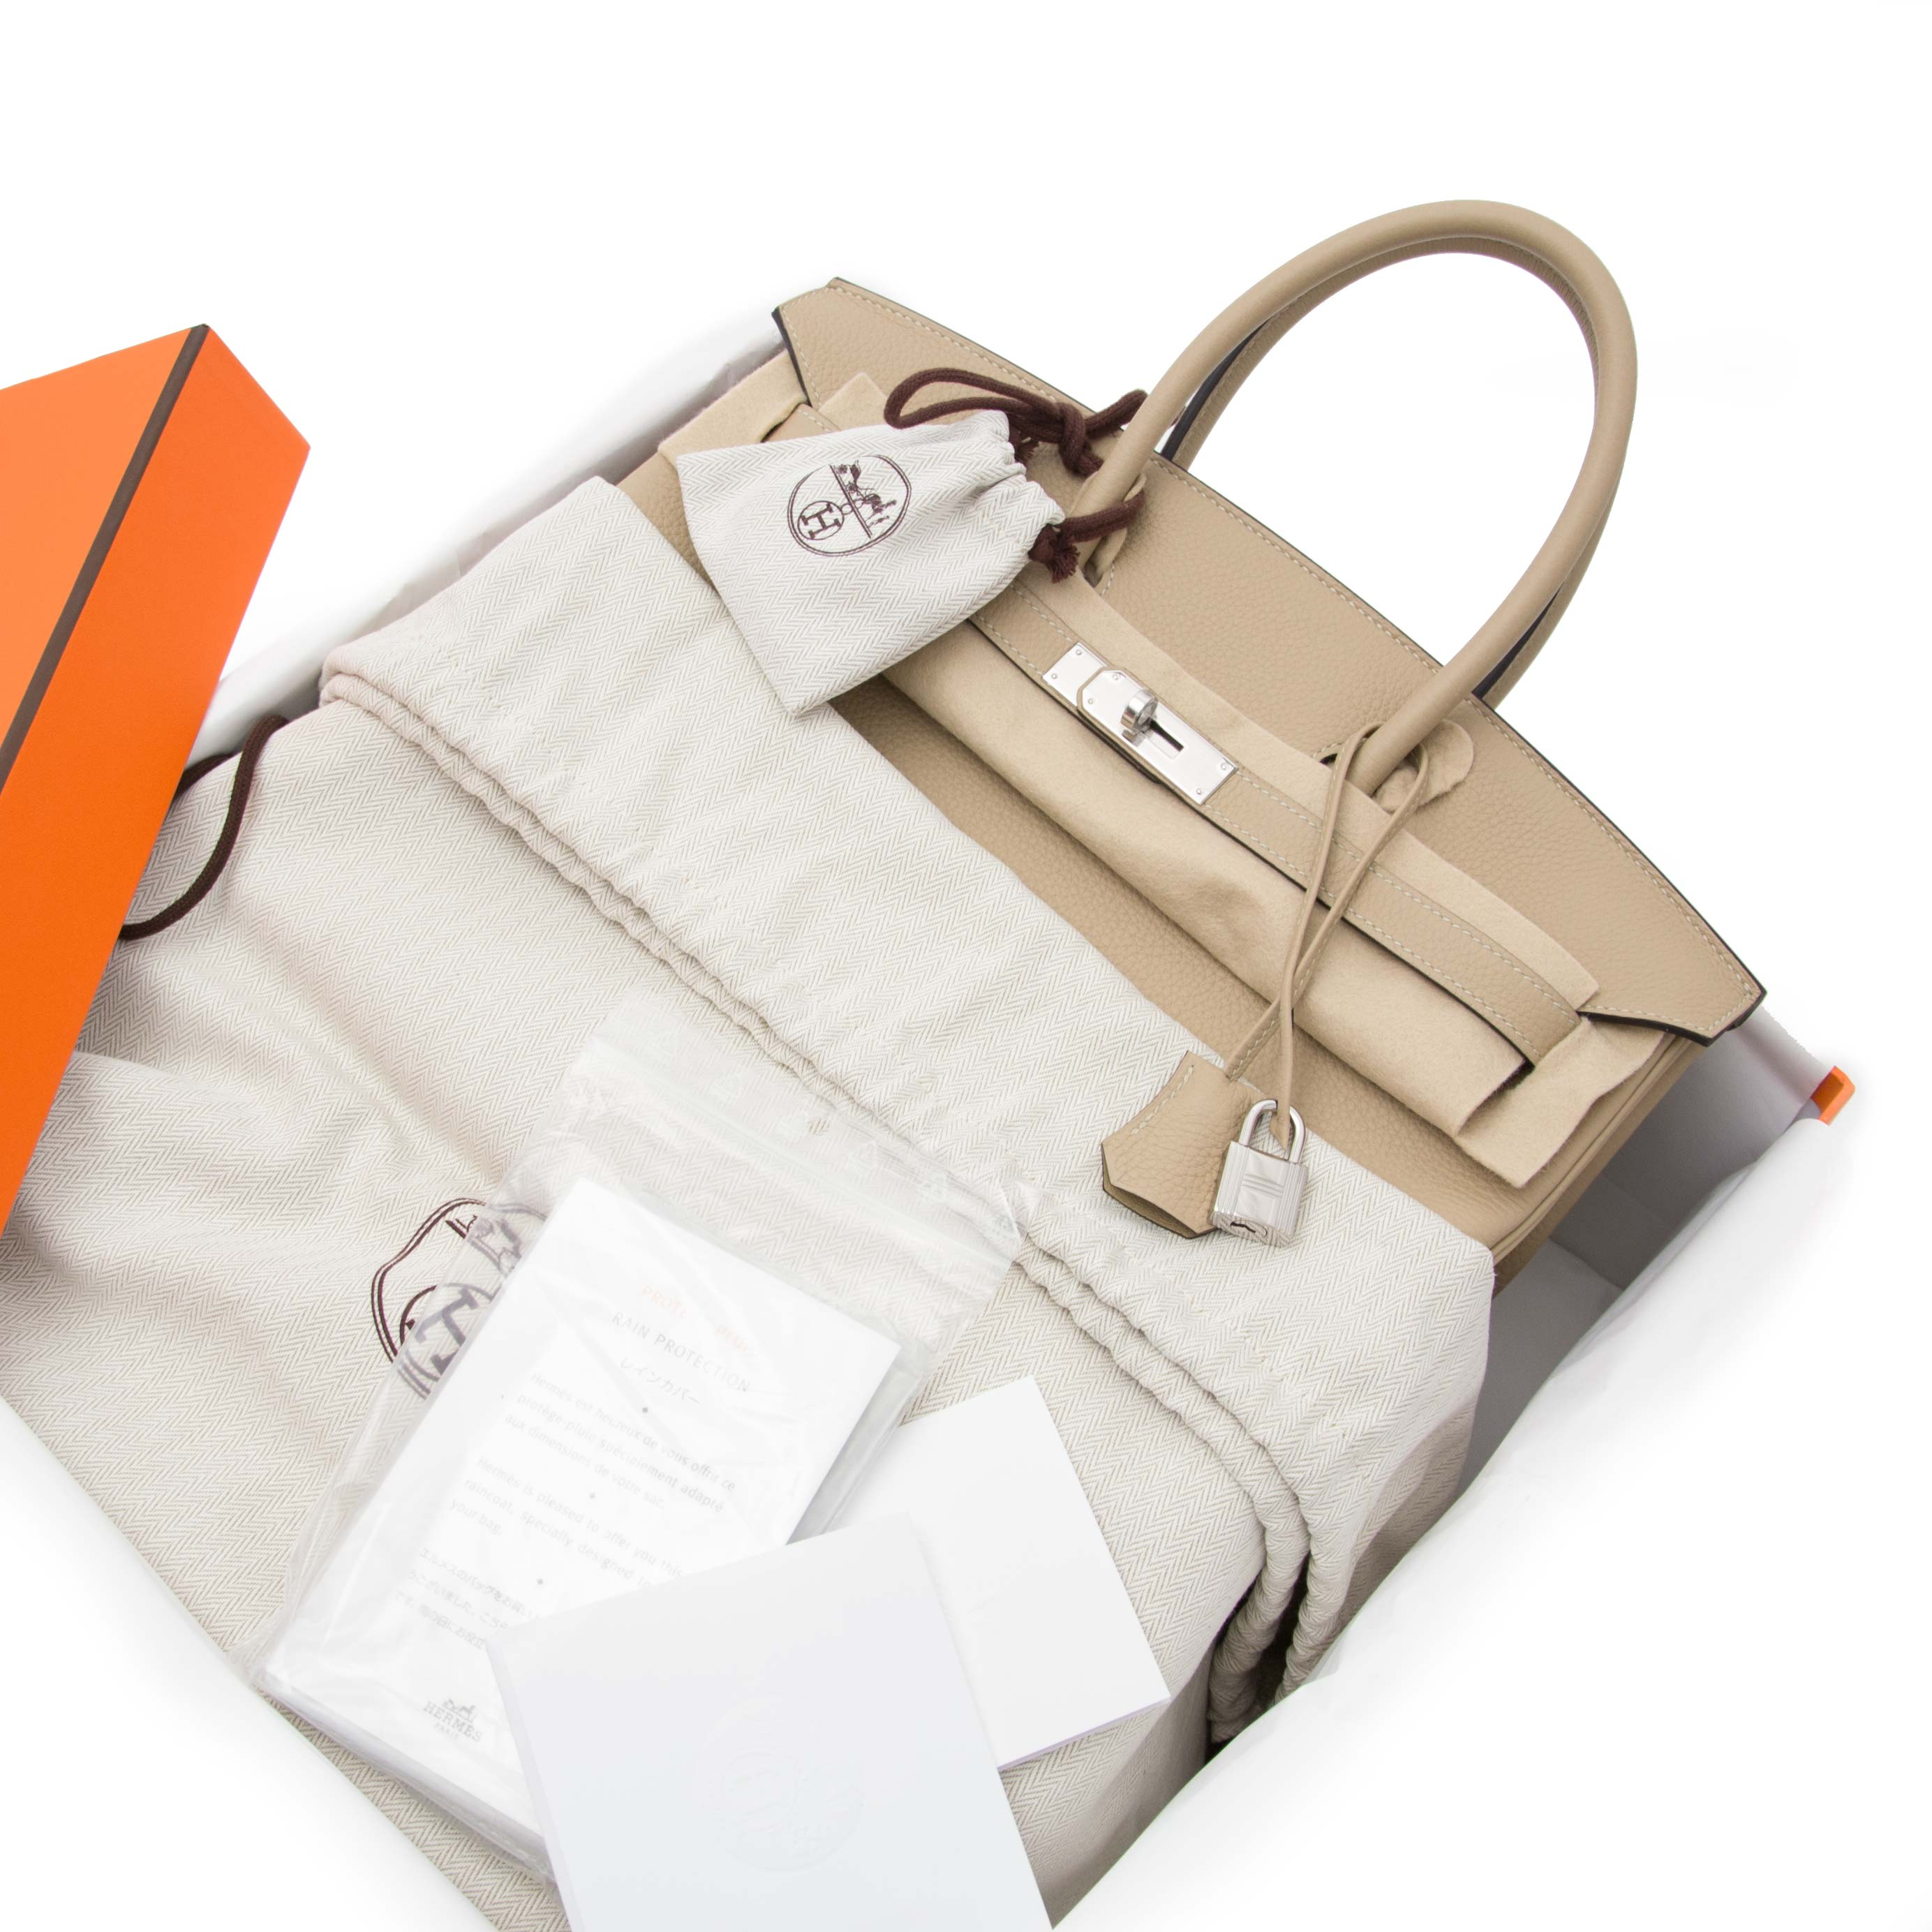 buy safe and secure online at labellov.com 100% authentic Hermes birkin 35 togo trench